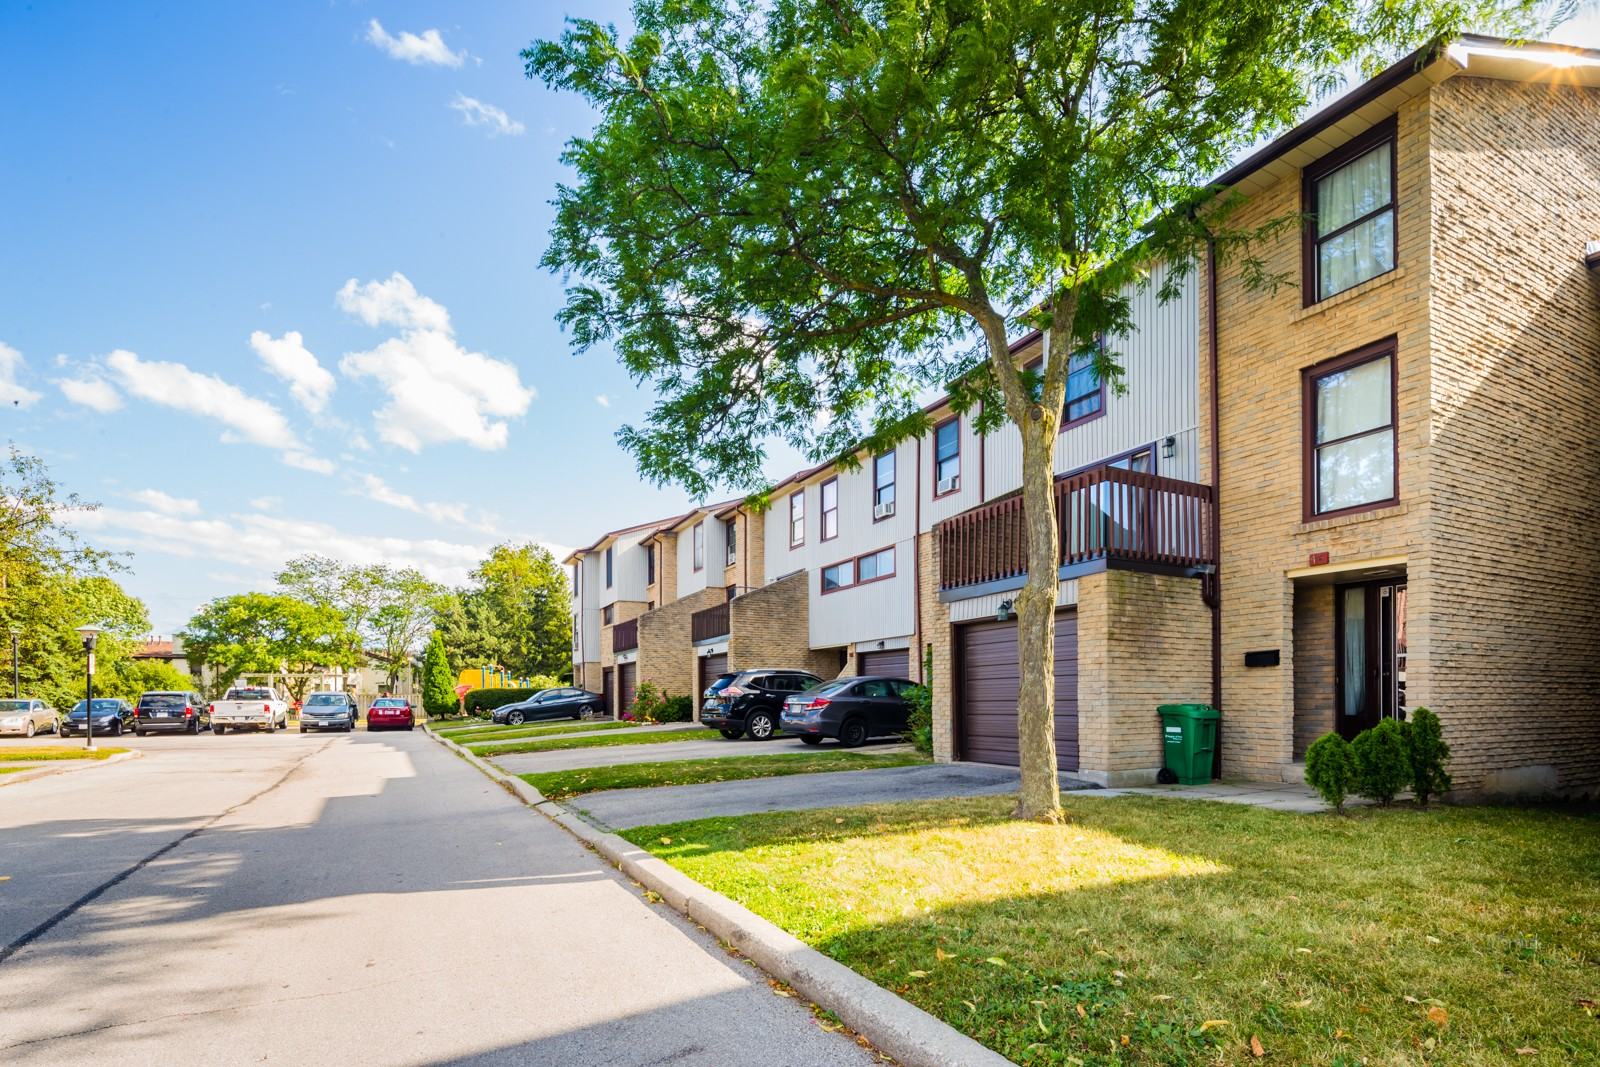 6860 Glen Erin Townhouses at 6860 Glen Erin Dr, Mississauga 0